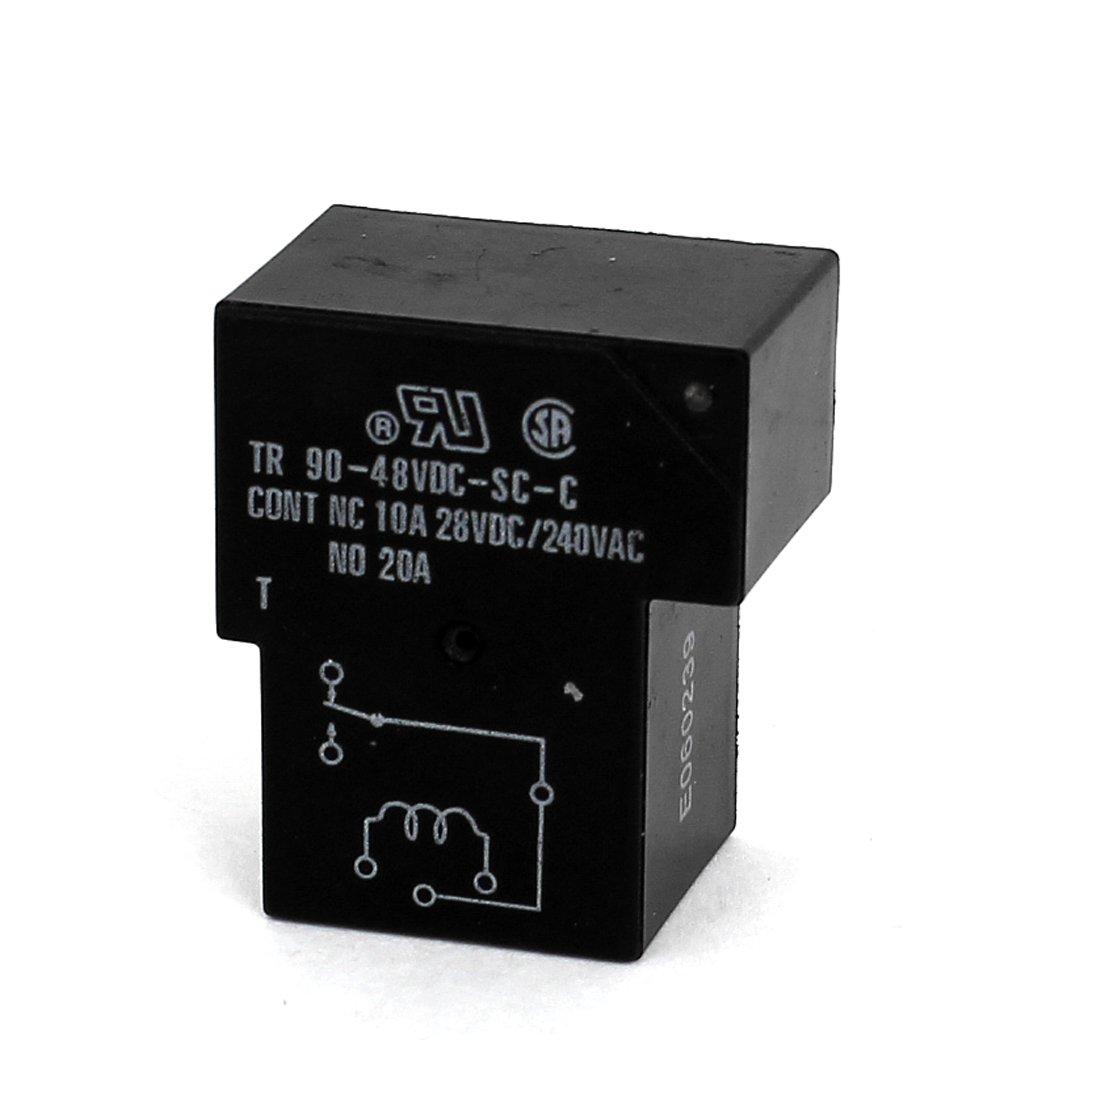 DC 48V Coil 6 Pins Terminal 1NO 1NC PCB Mount Electromagnetic Power Relays TR90-48VDC-SC-C